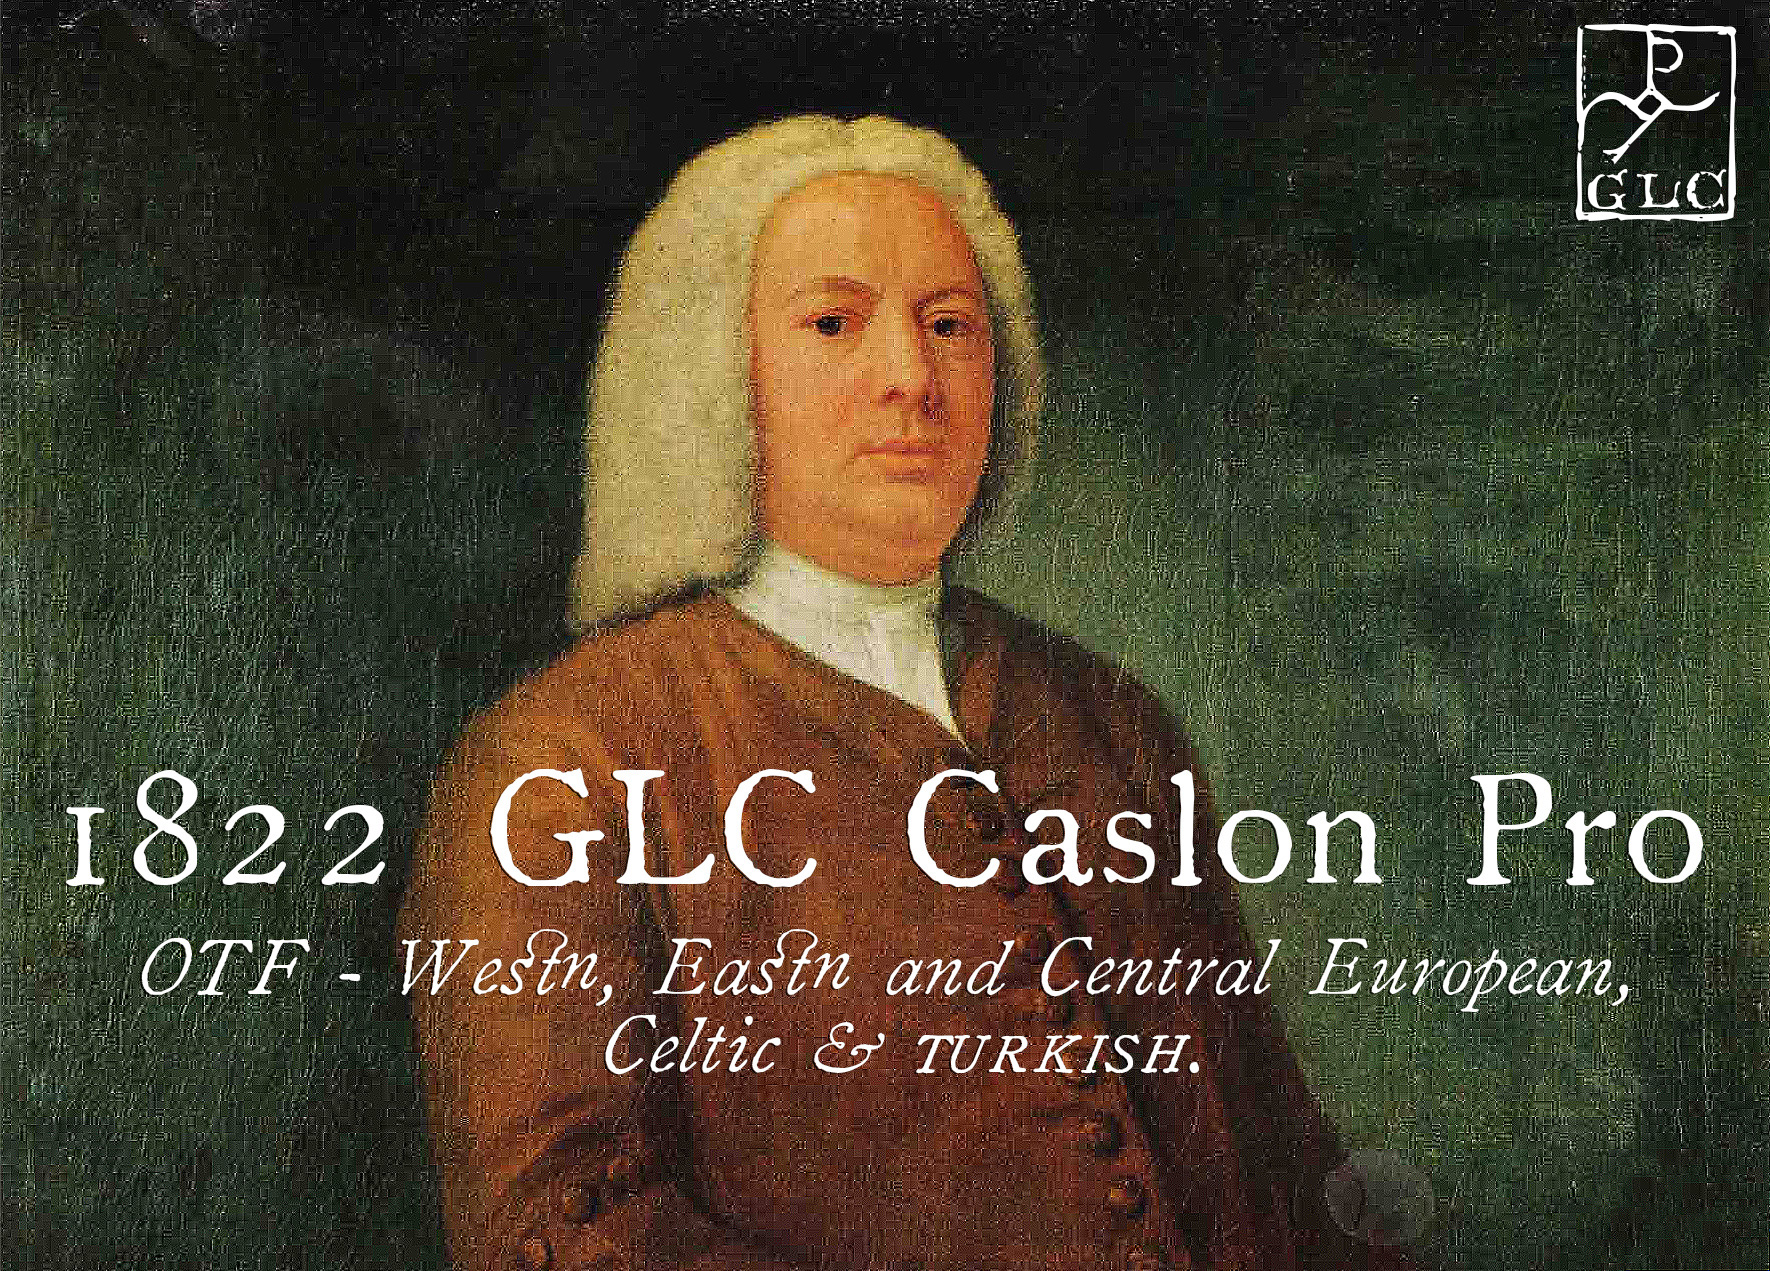 caslon-first-image